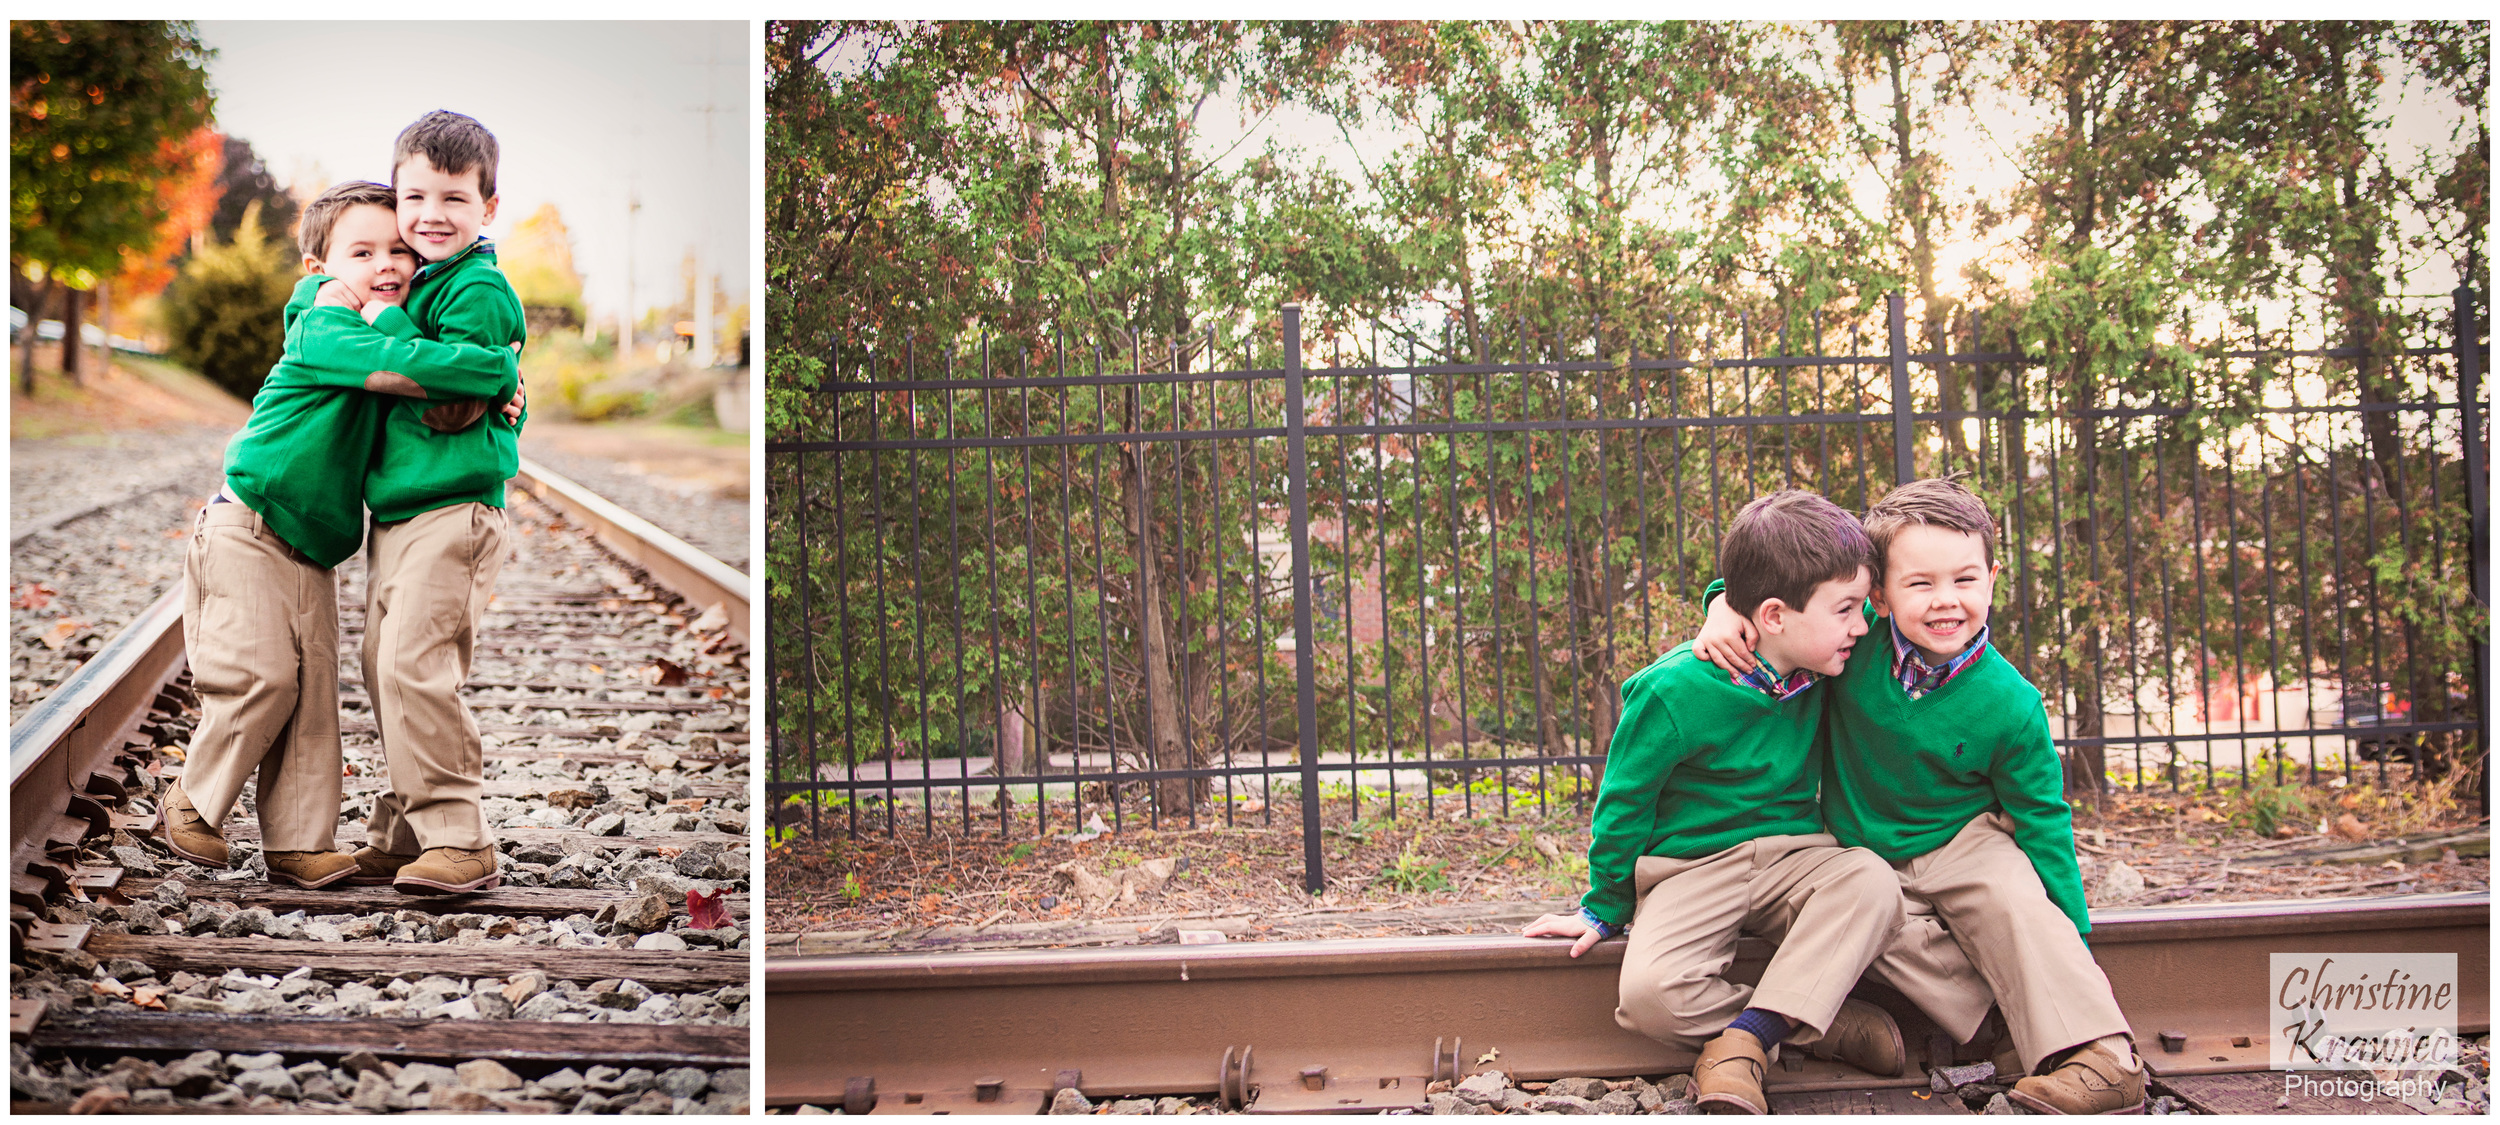 Christine Krawiec Photography - Haddon Heights Train Tracks